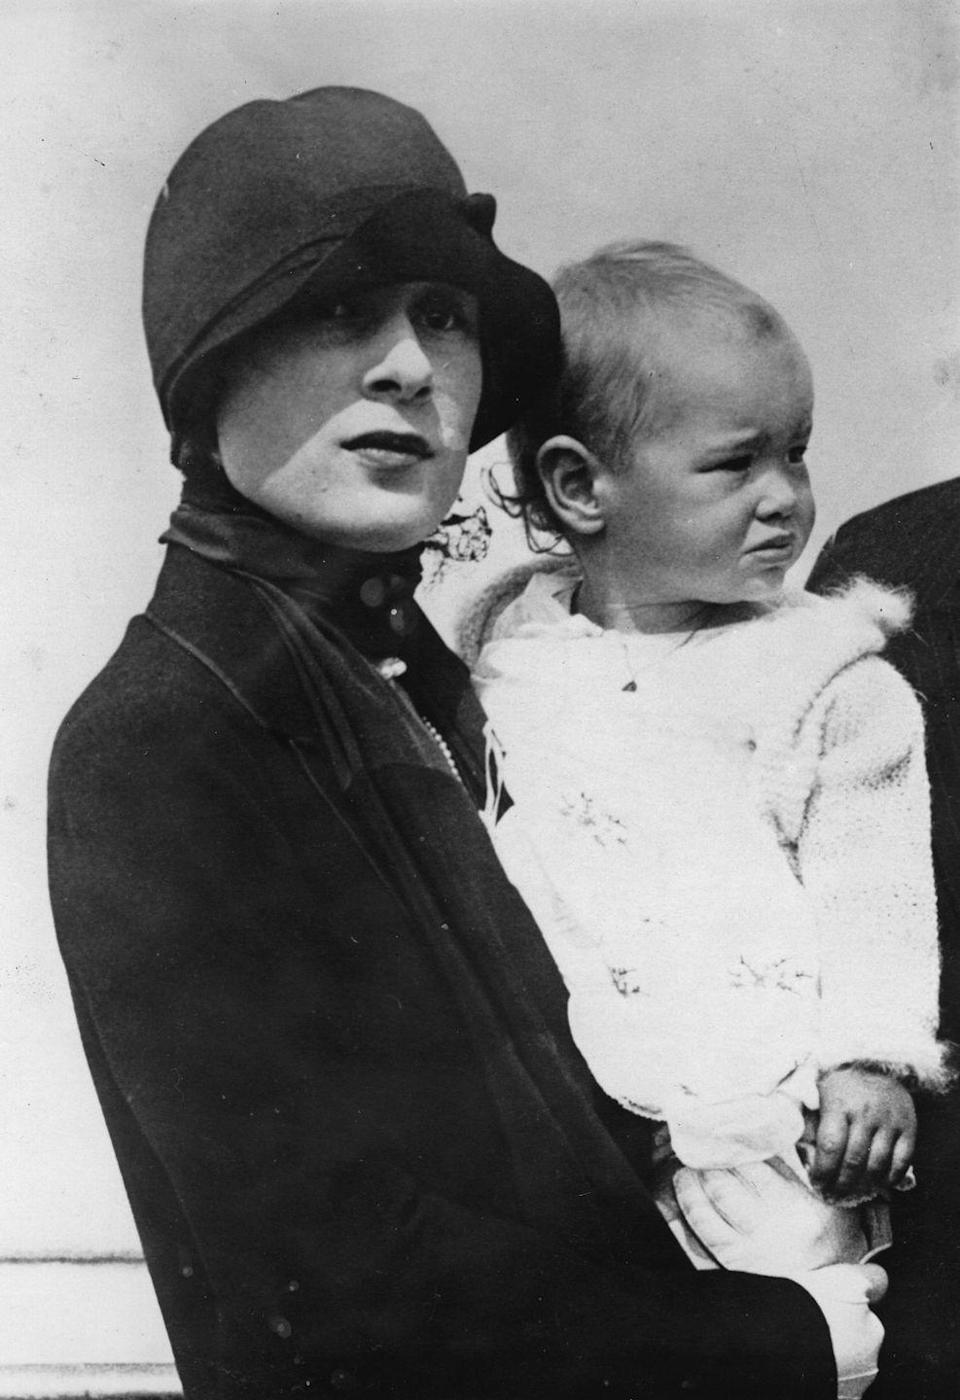 <p>Gloria was born February 20, 1924. Here, she's held by her mother Gloria Morgan Vanderbilt, shortly after the death of her father, Reginald Vanderbilt.</p>